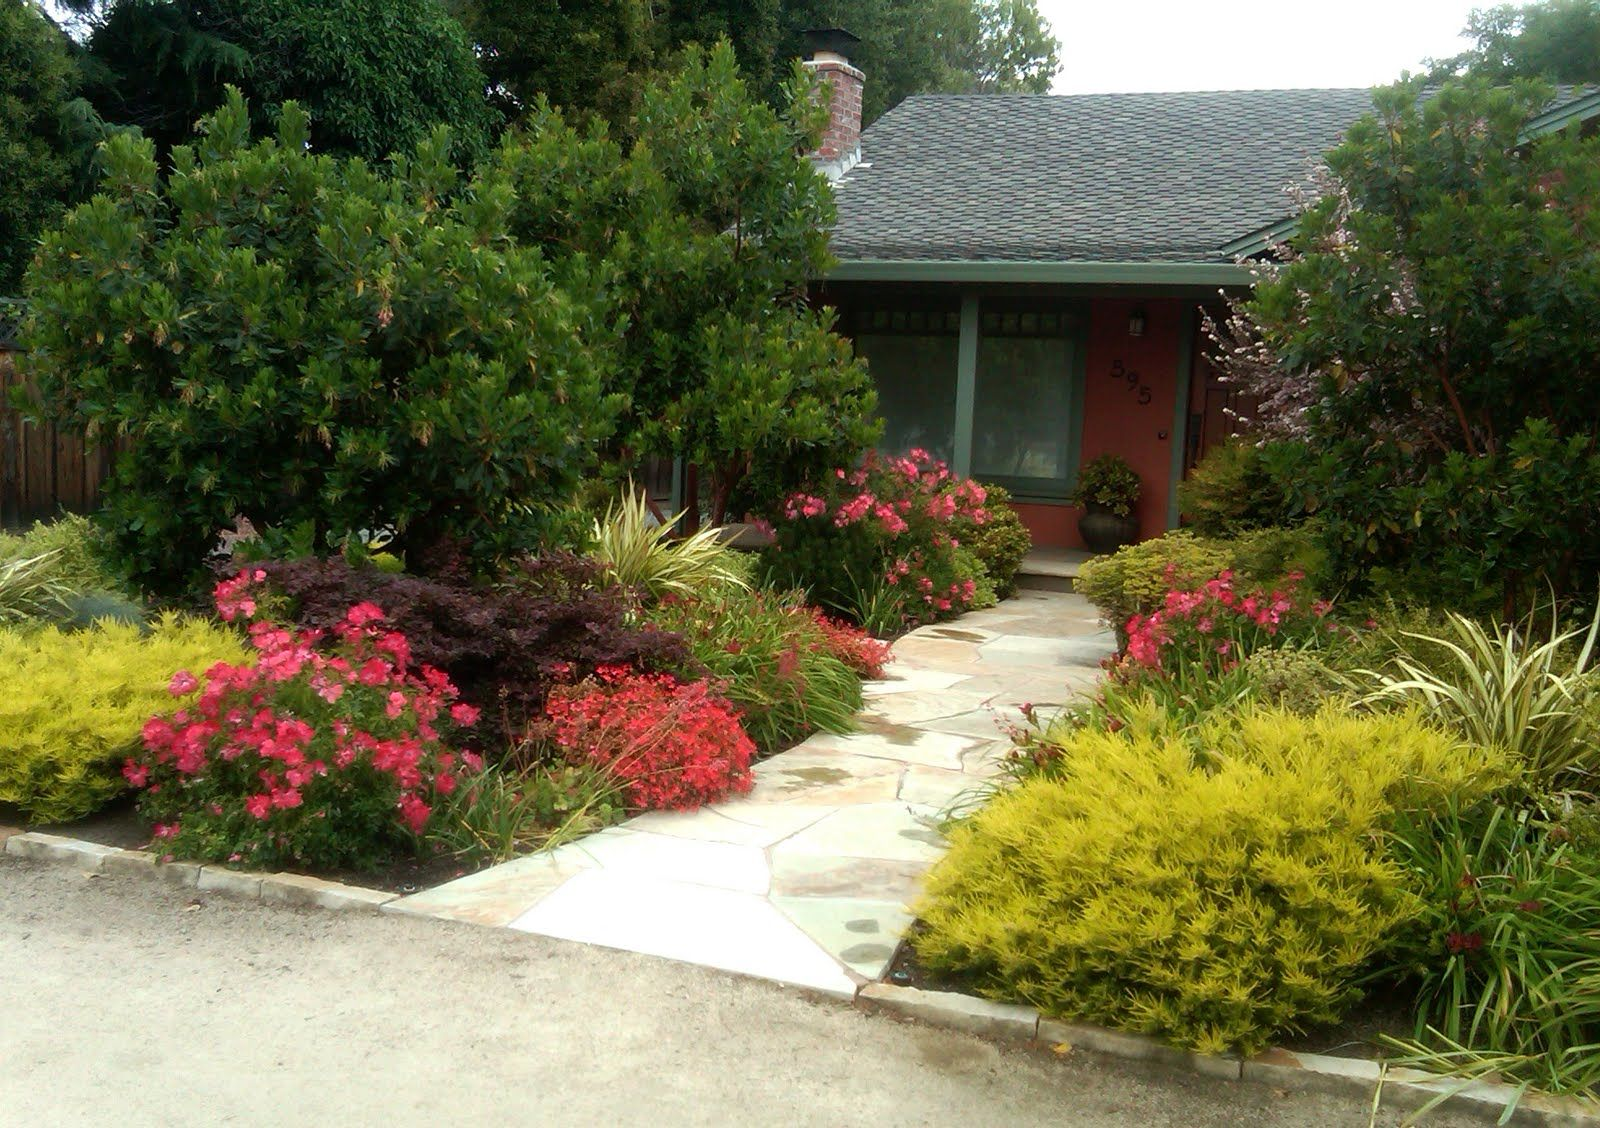 lawnless front yard uk - Google Search | Front garden ...